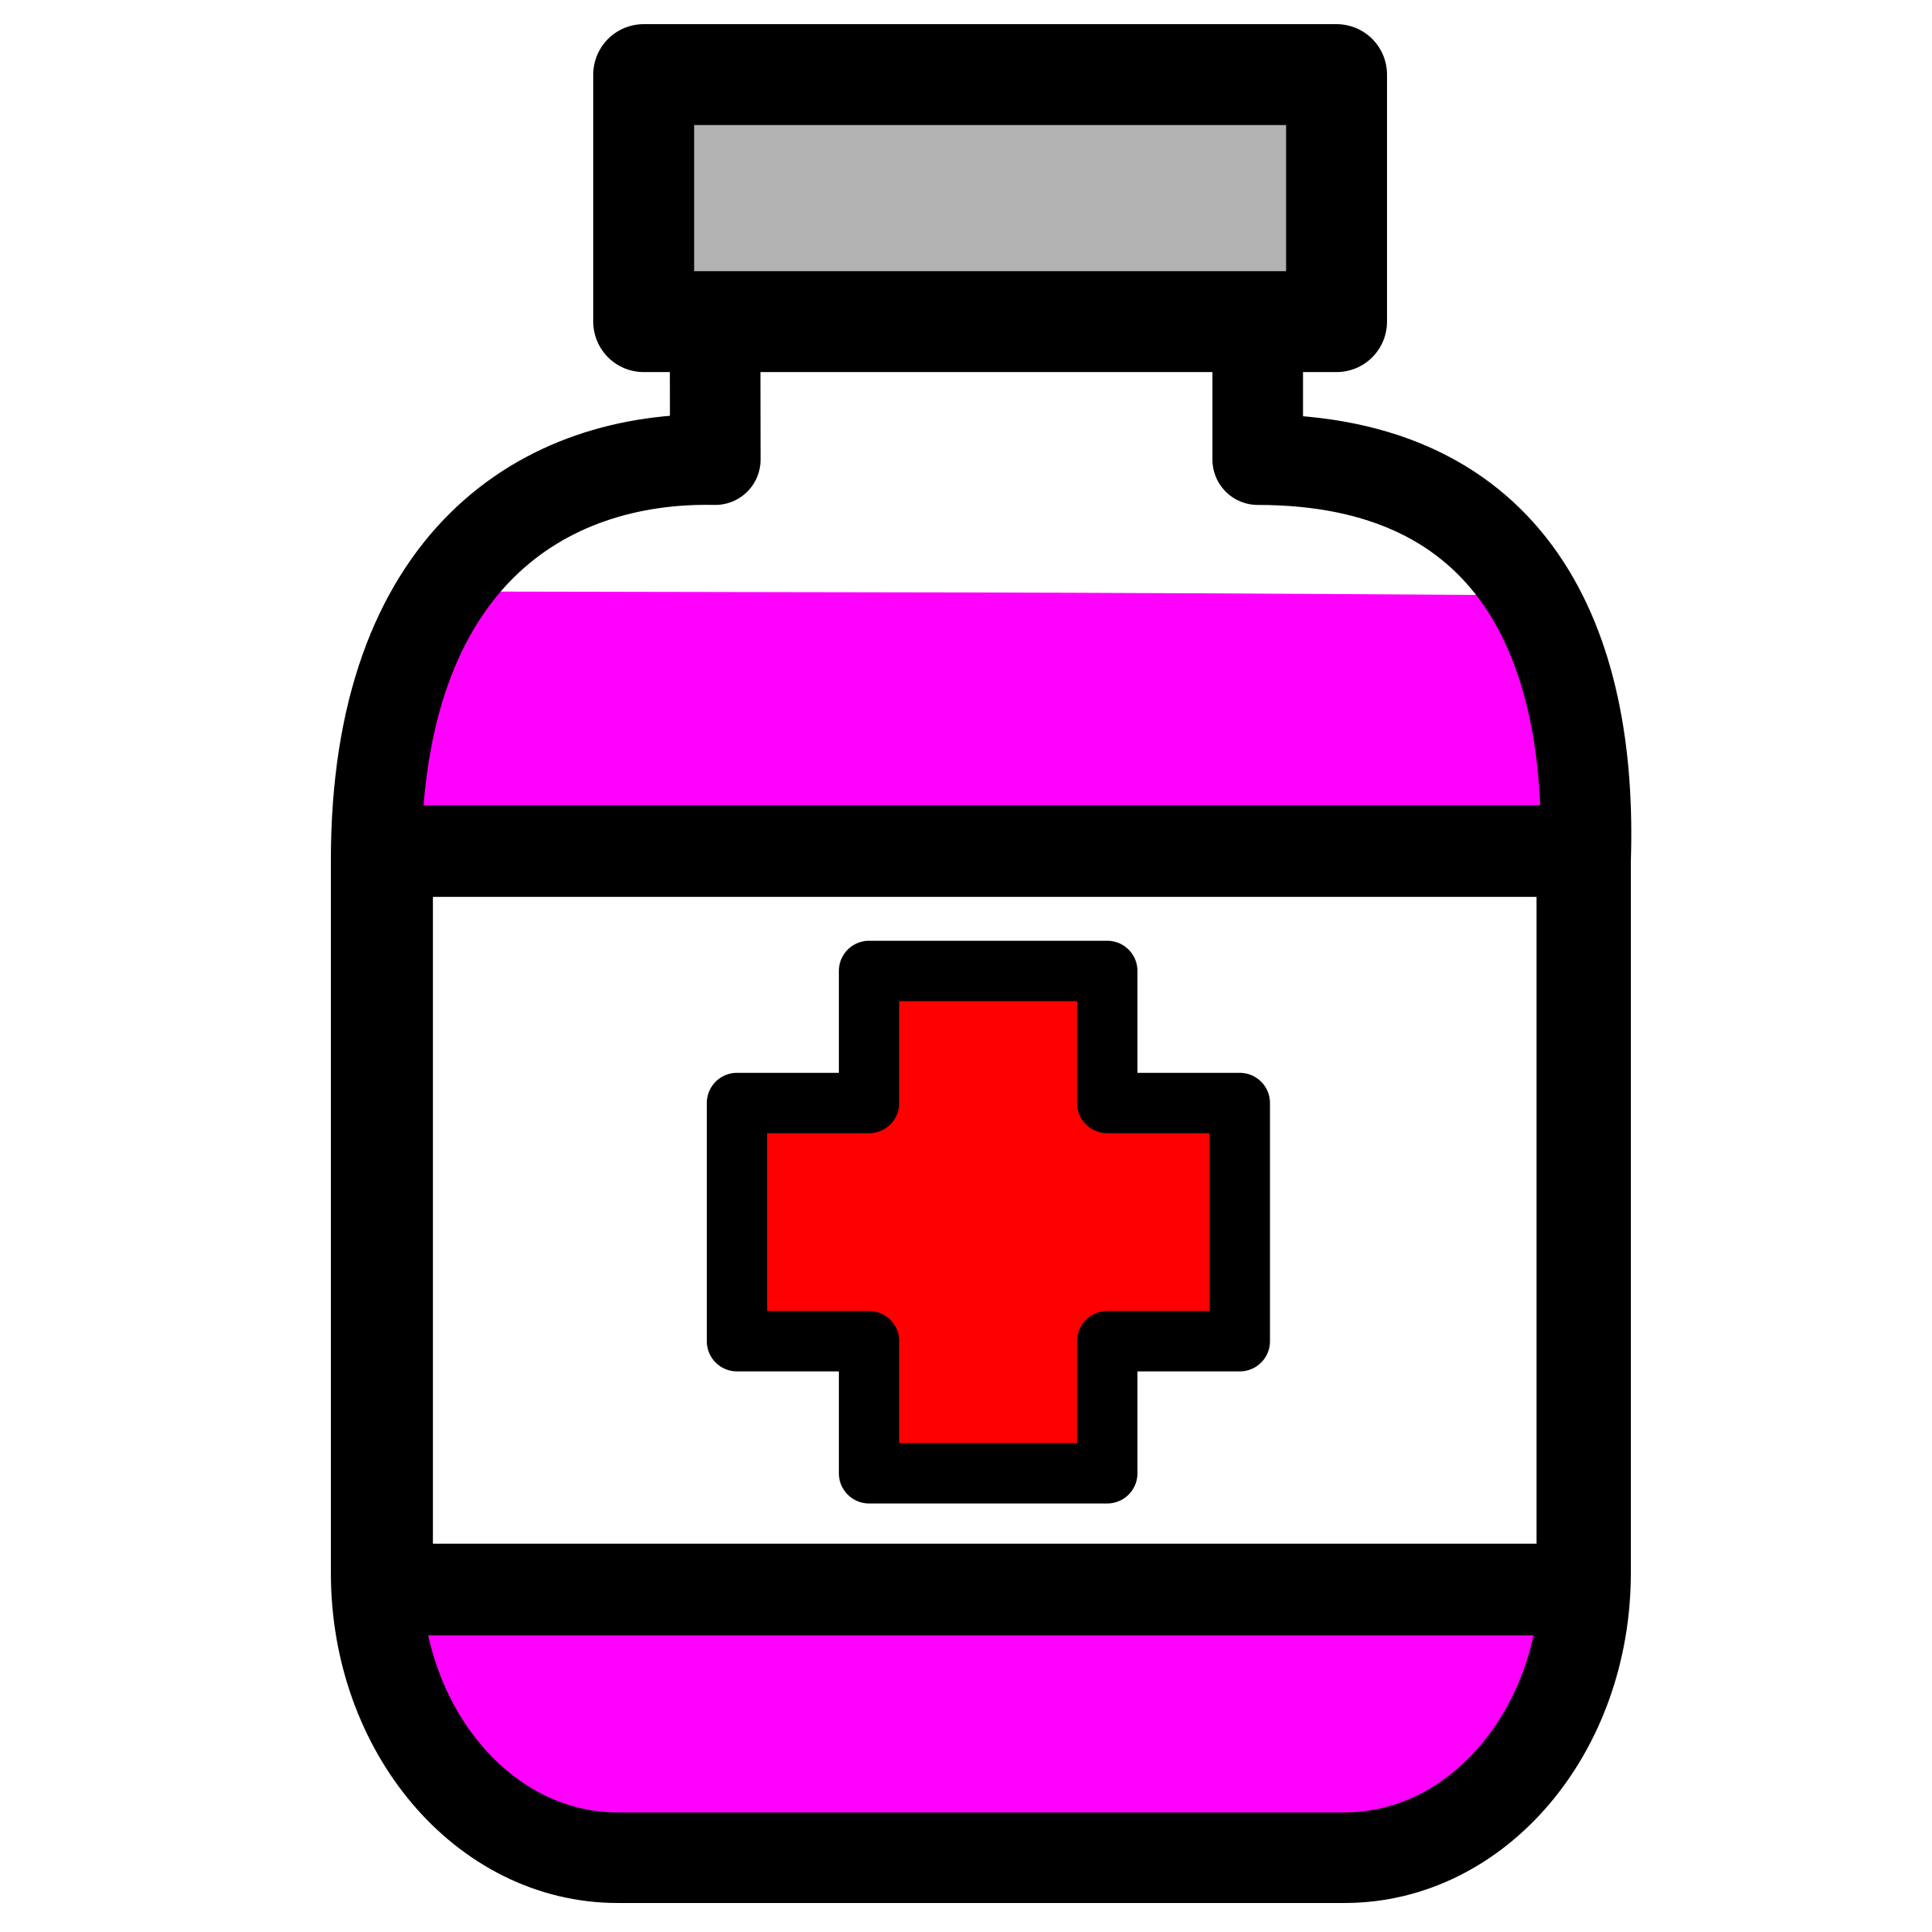 graphic transparent library Medication clipart. Medicine icon big image.